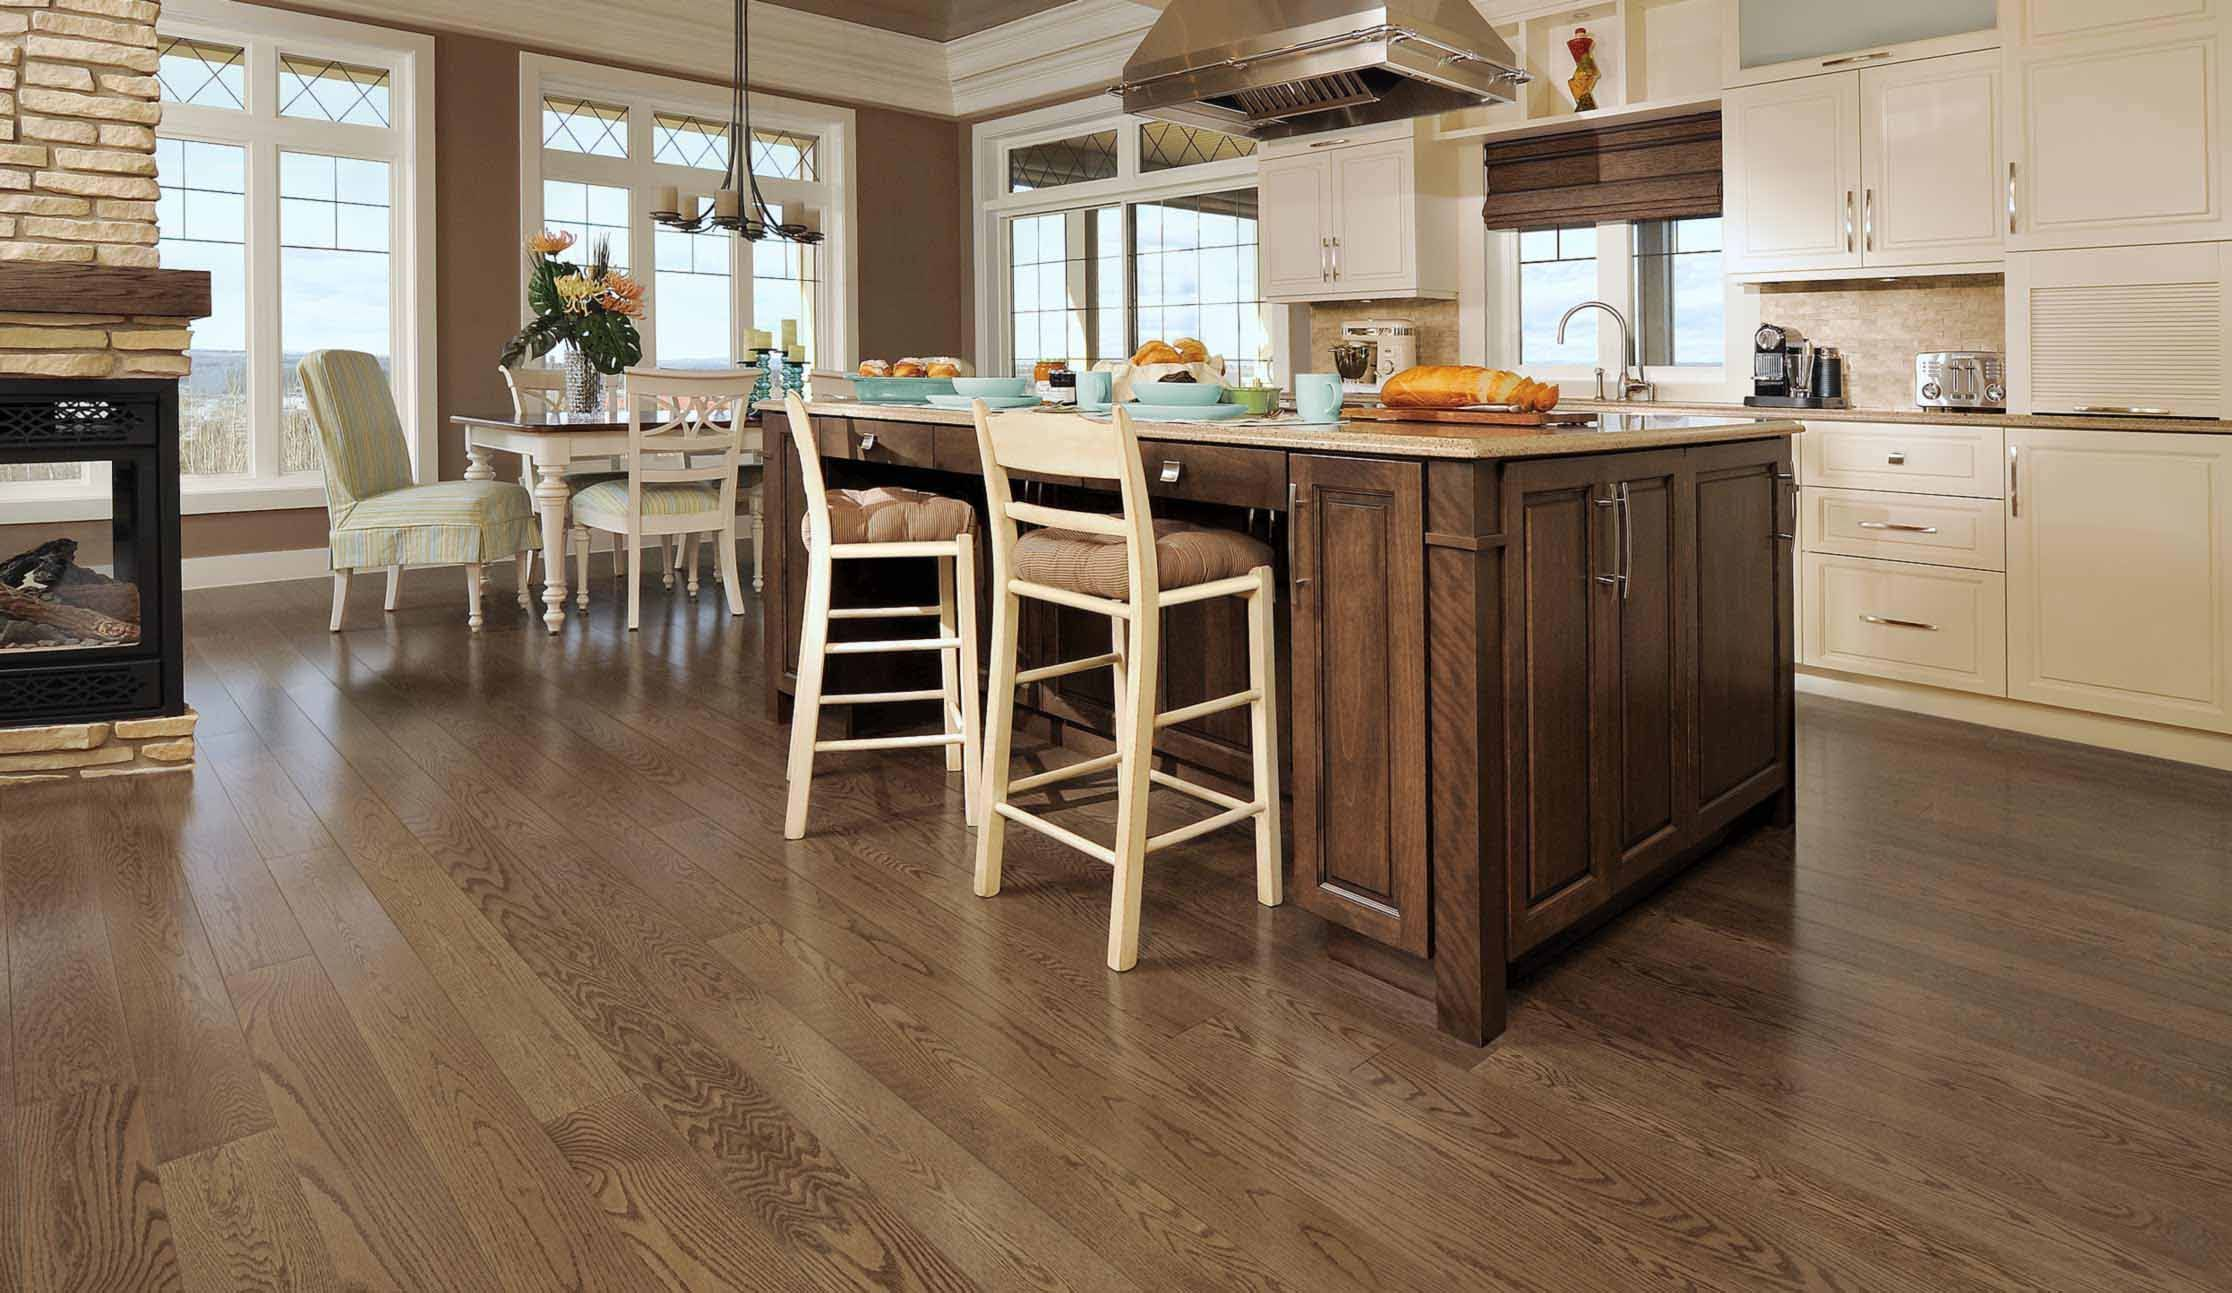 Good Kitchen Flooring Herringbone Red Oak Savanna Mirage Hardwood Floors Available